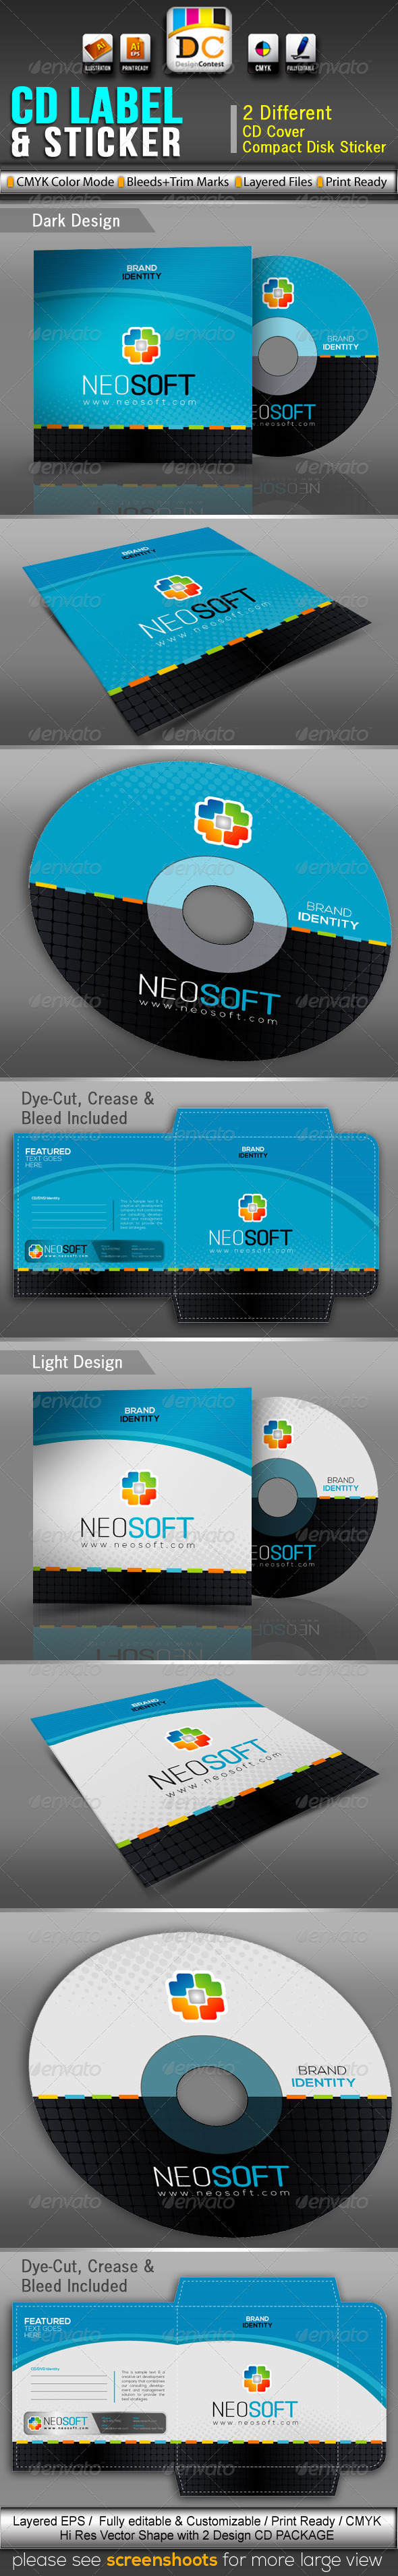 NeoSoft_CD Sleeve/Label & Sticker  - Packaging Print Templates